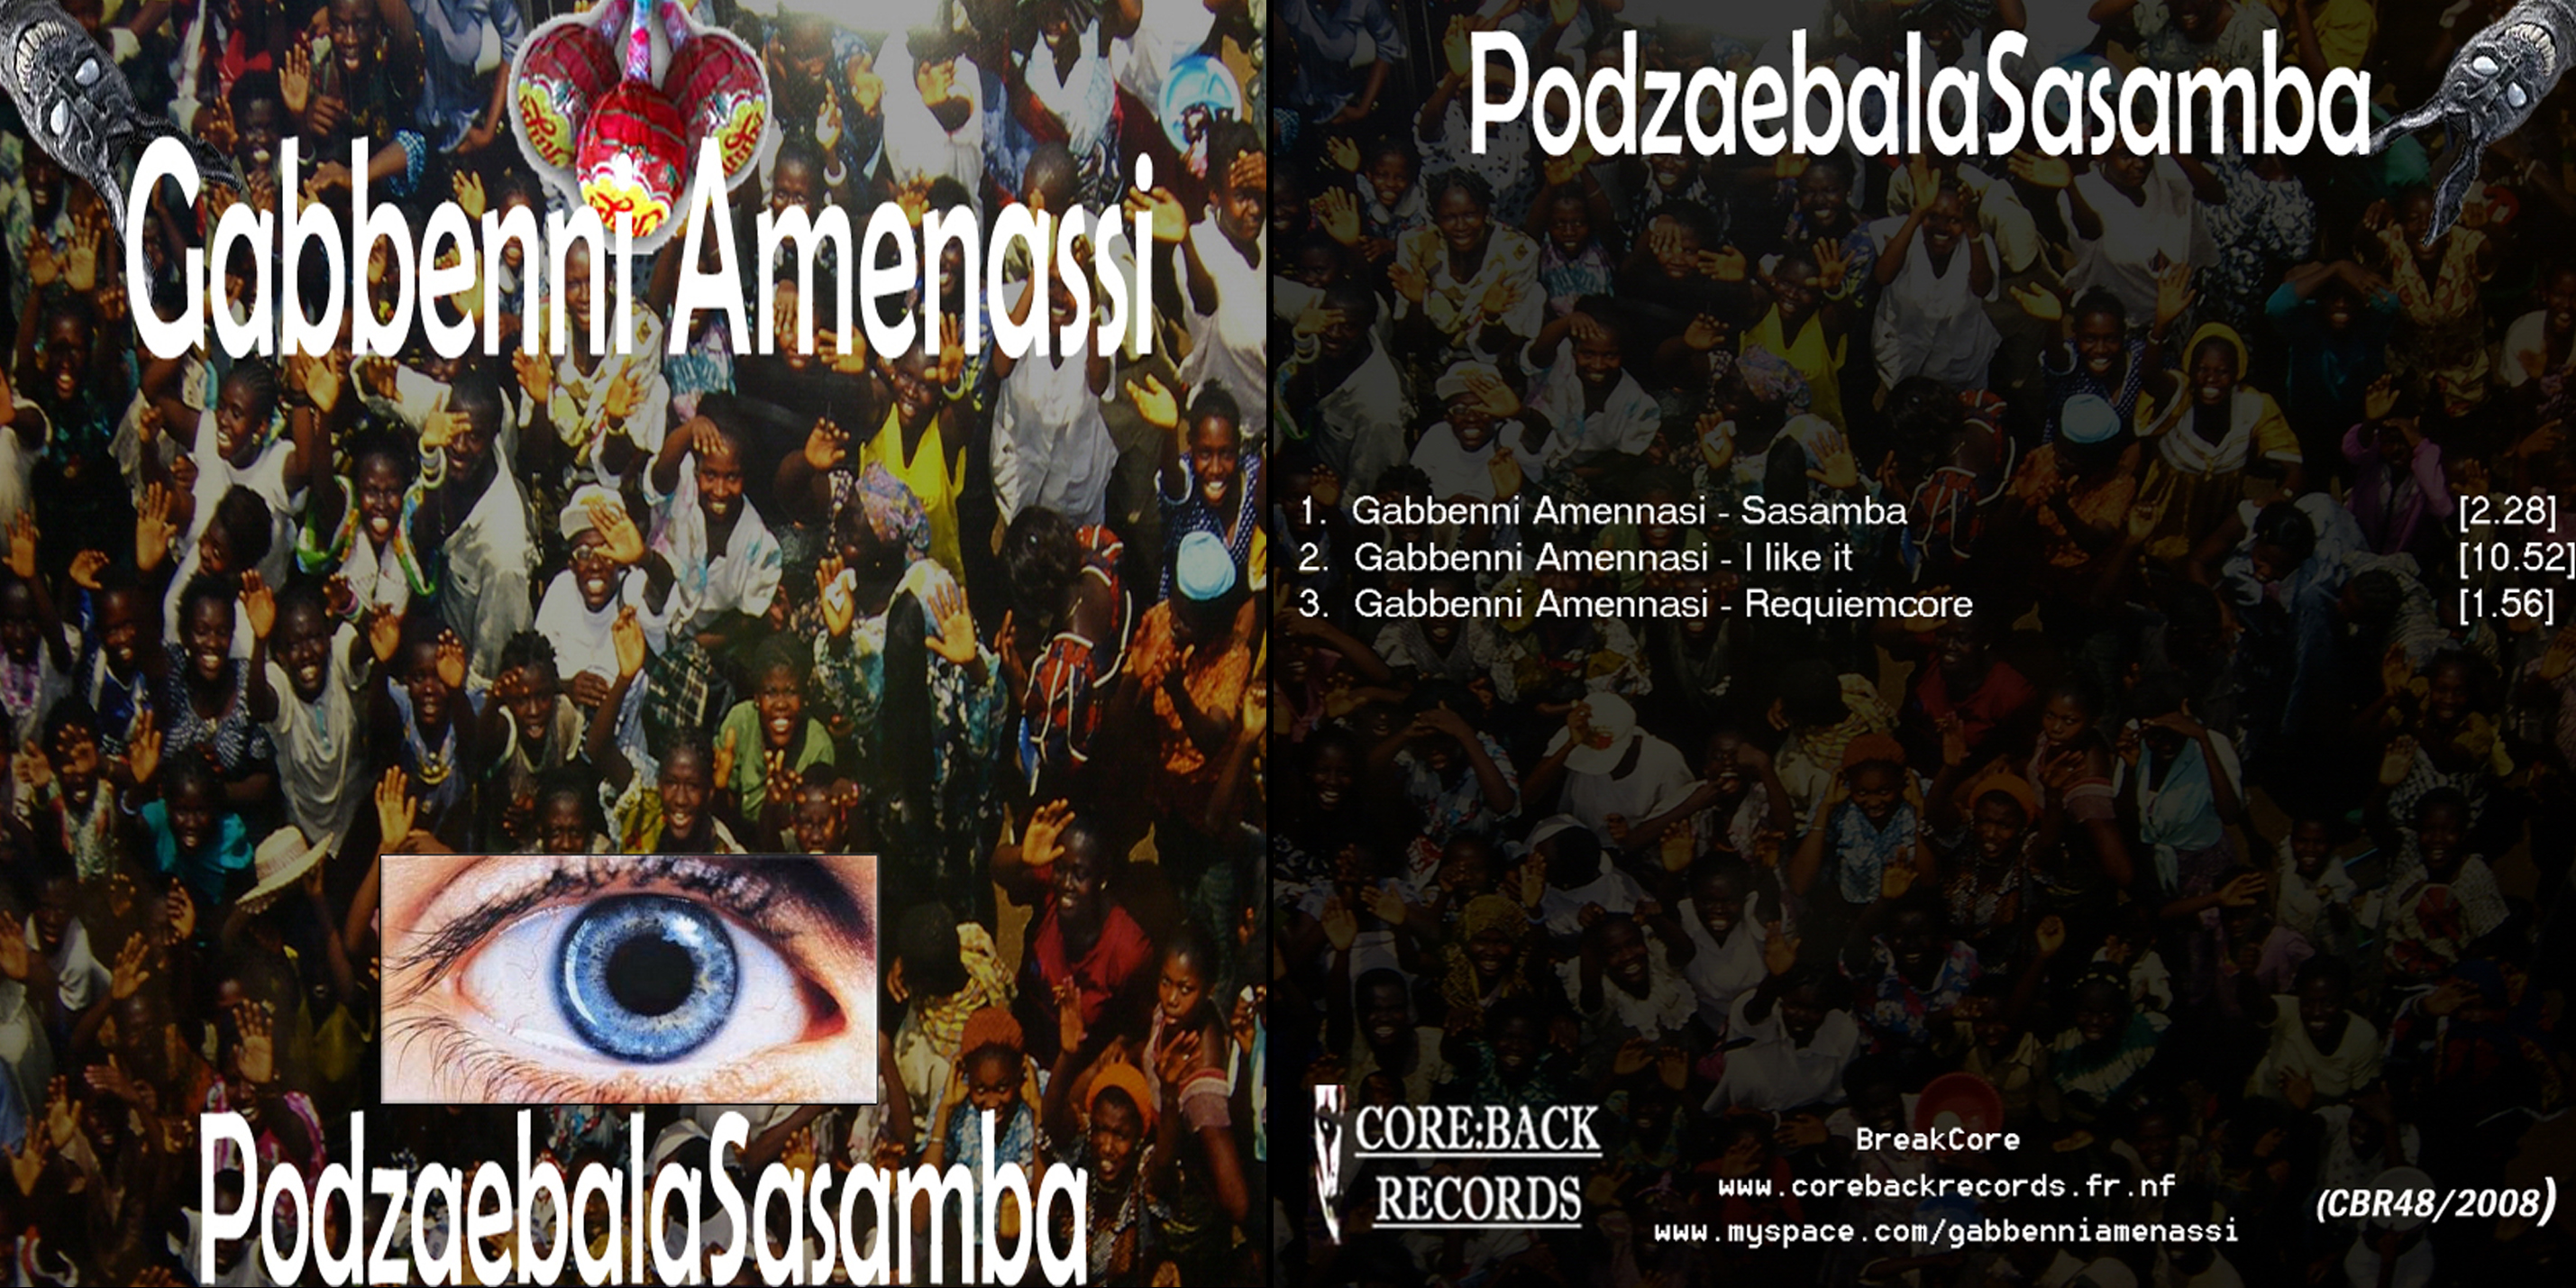 BreakCore, MashUp, Gabbenni Amennasi Sasamba, Gabbenni Amennasi I like it, Gabbenni Amennasi Requiemcore, I want mixing 14 tracks with gabba & amenz